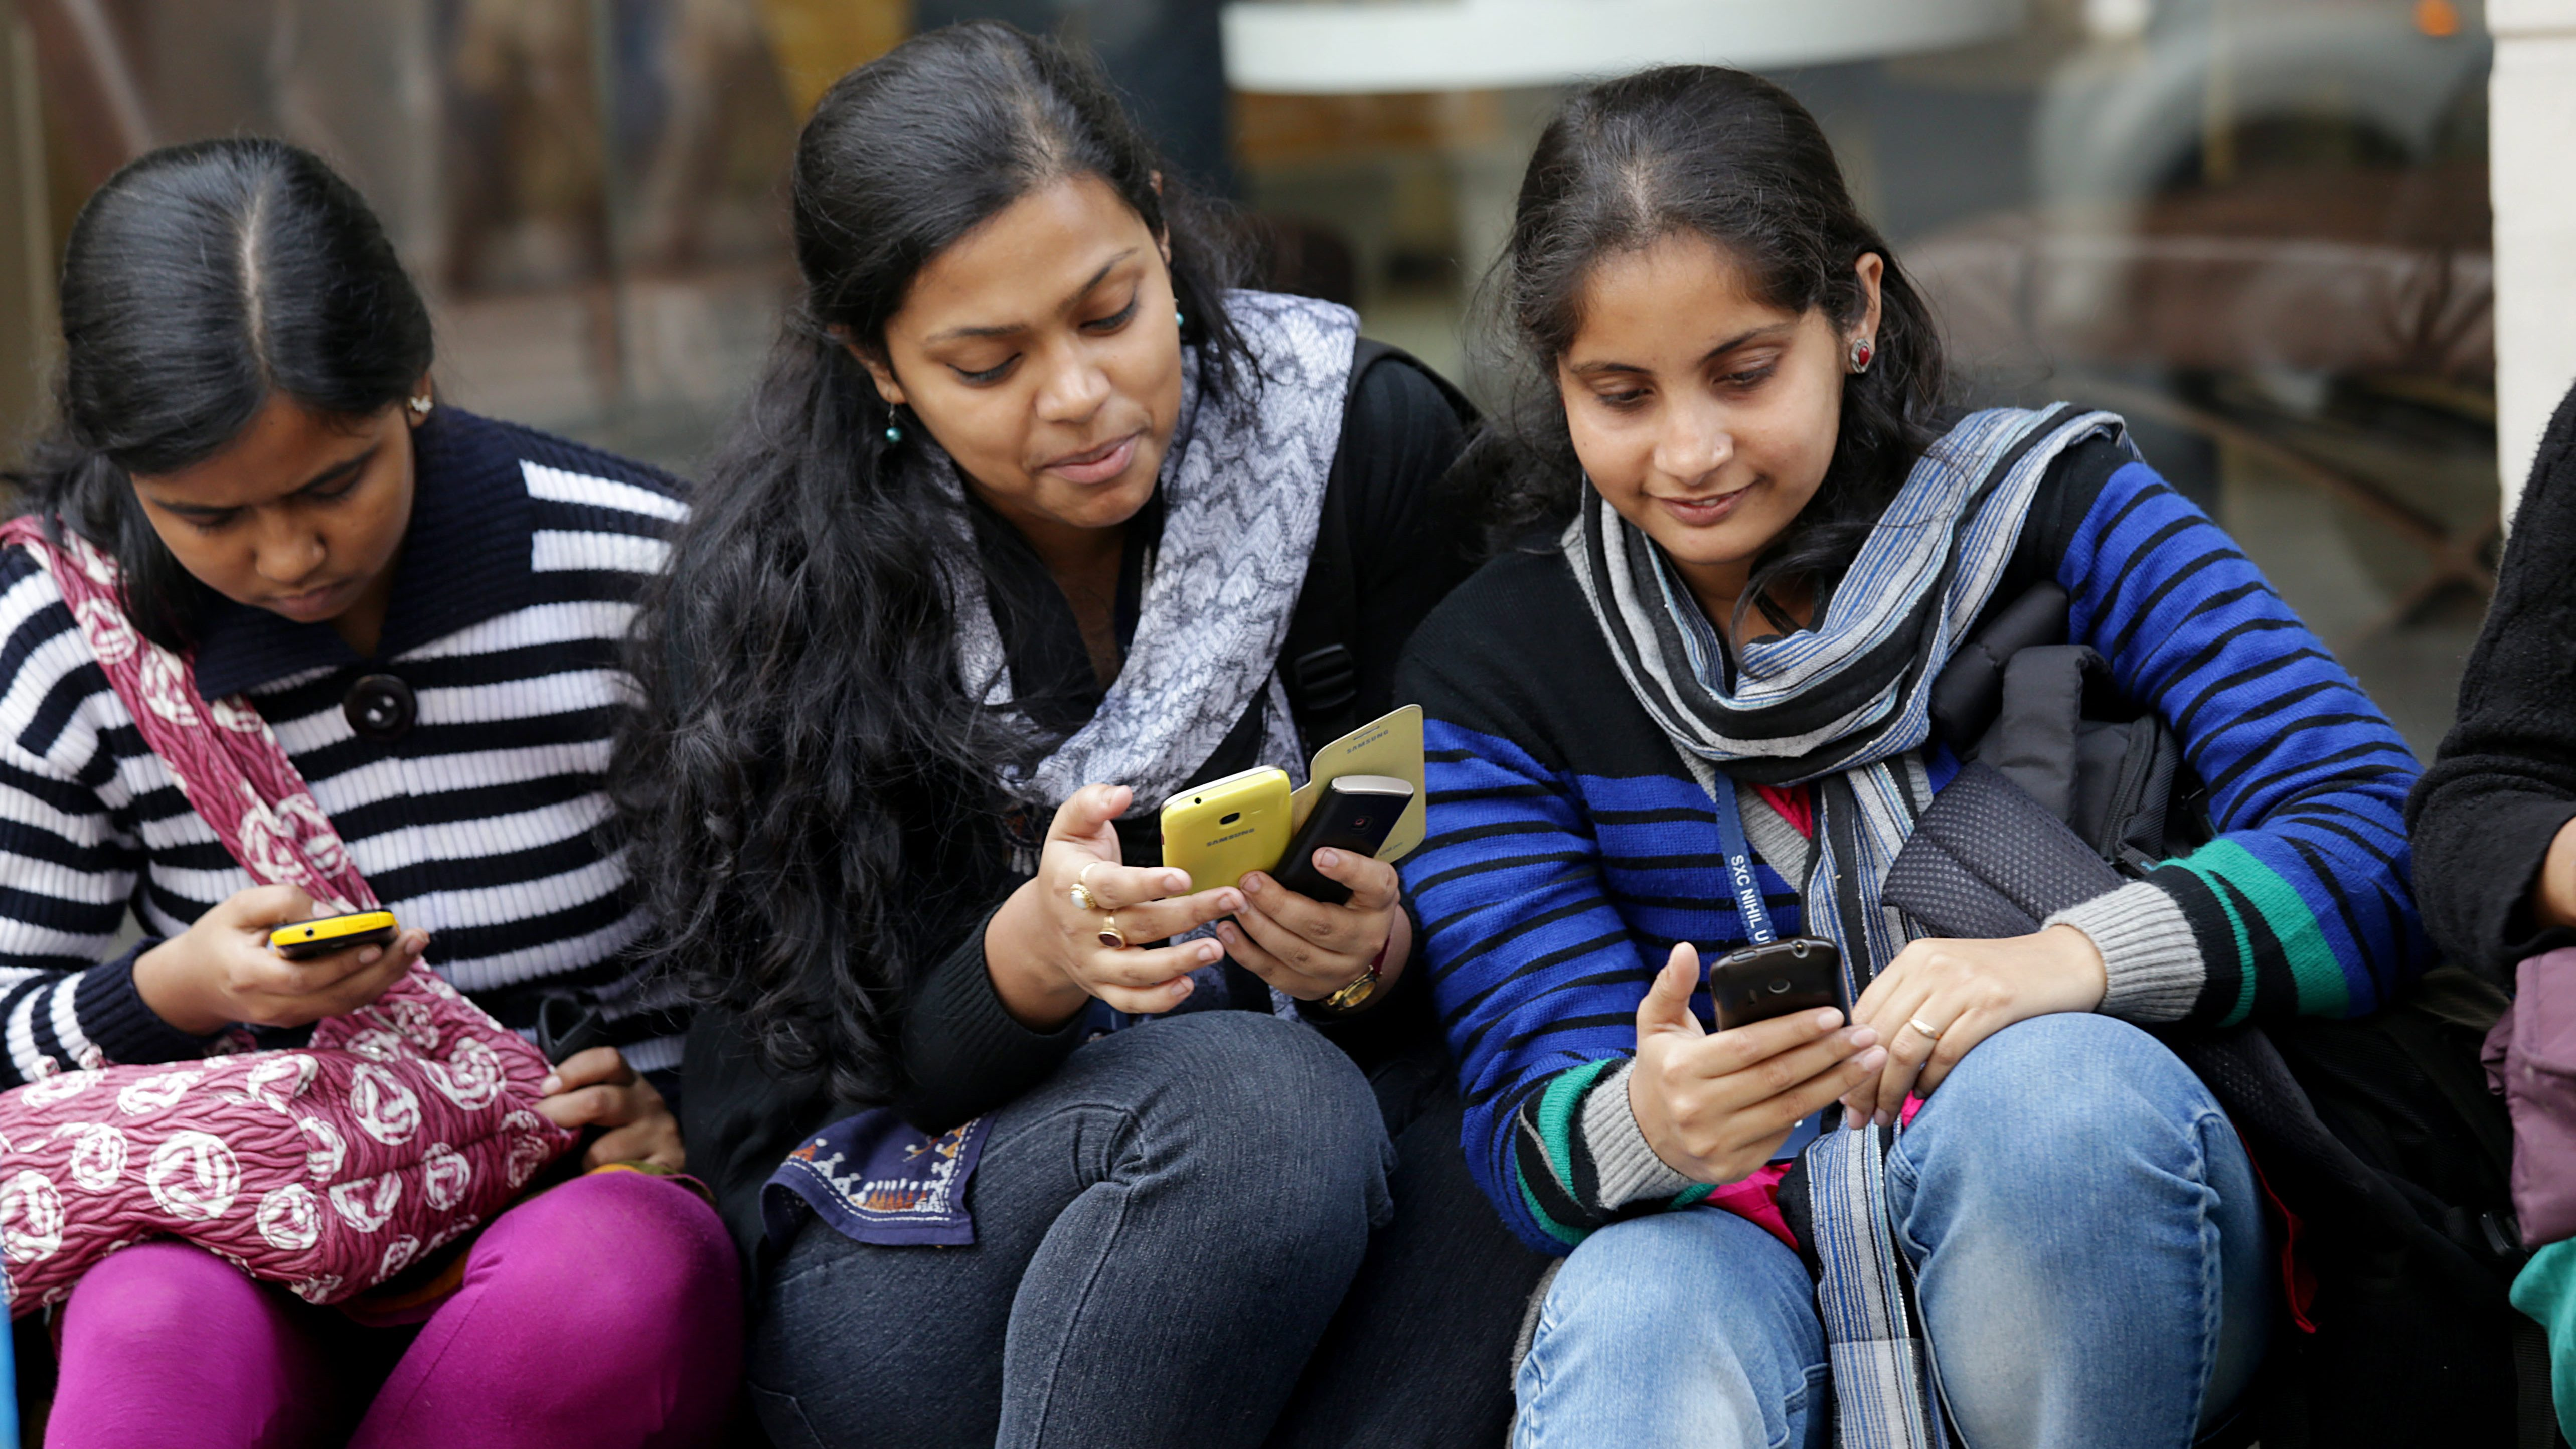 Indian students browse the internet with their smartphone in Calcutta, India, 09 February 2015. Calcutta, capital of West Bengal, has become India's first fully WiFi-enabled metro city. Indian telecom company Reliance JIO is reportedly providing the services.The WiFi services will be initially free of charge. New Delhi, the capital of India, is also on its way to develop this facility soon.